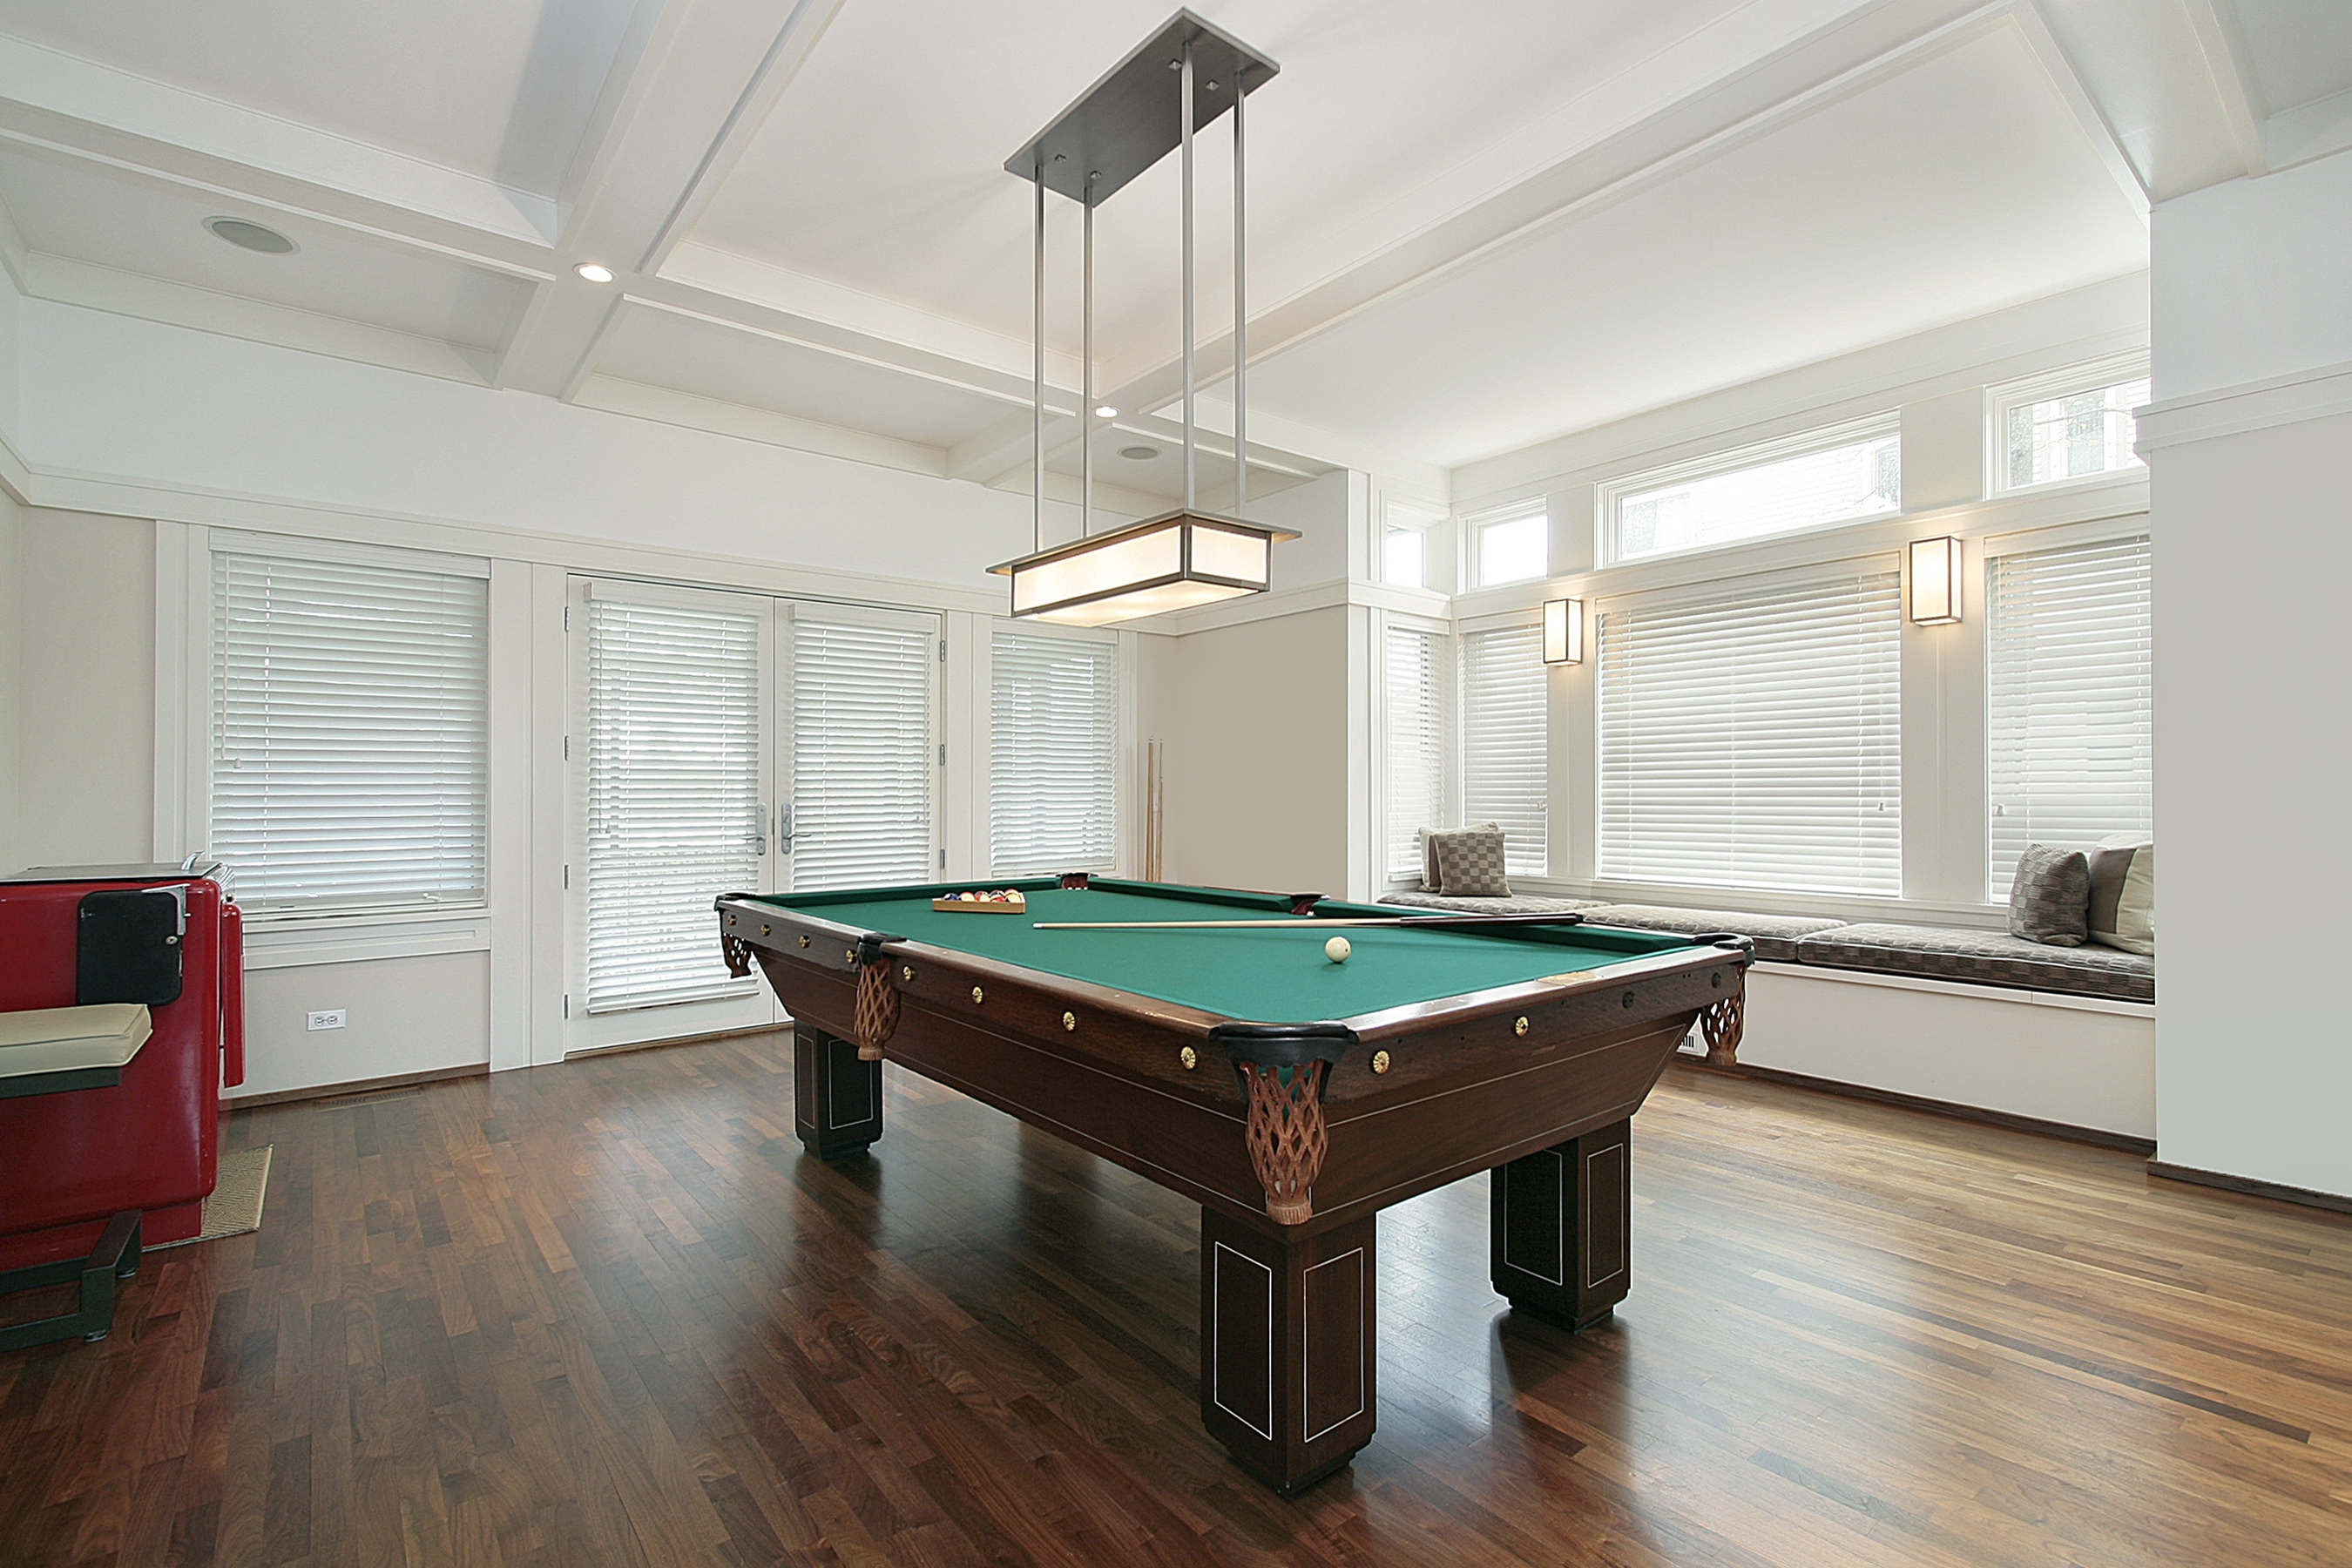 Family room with pool table